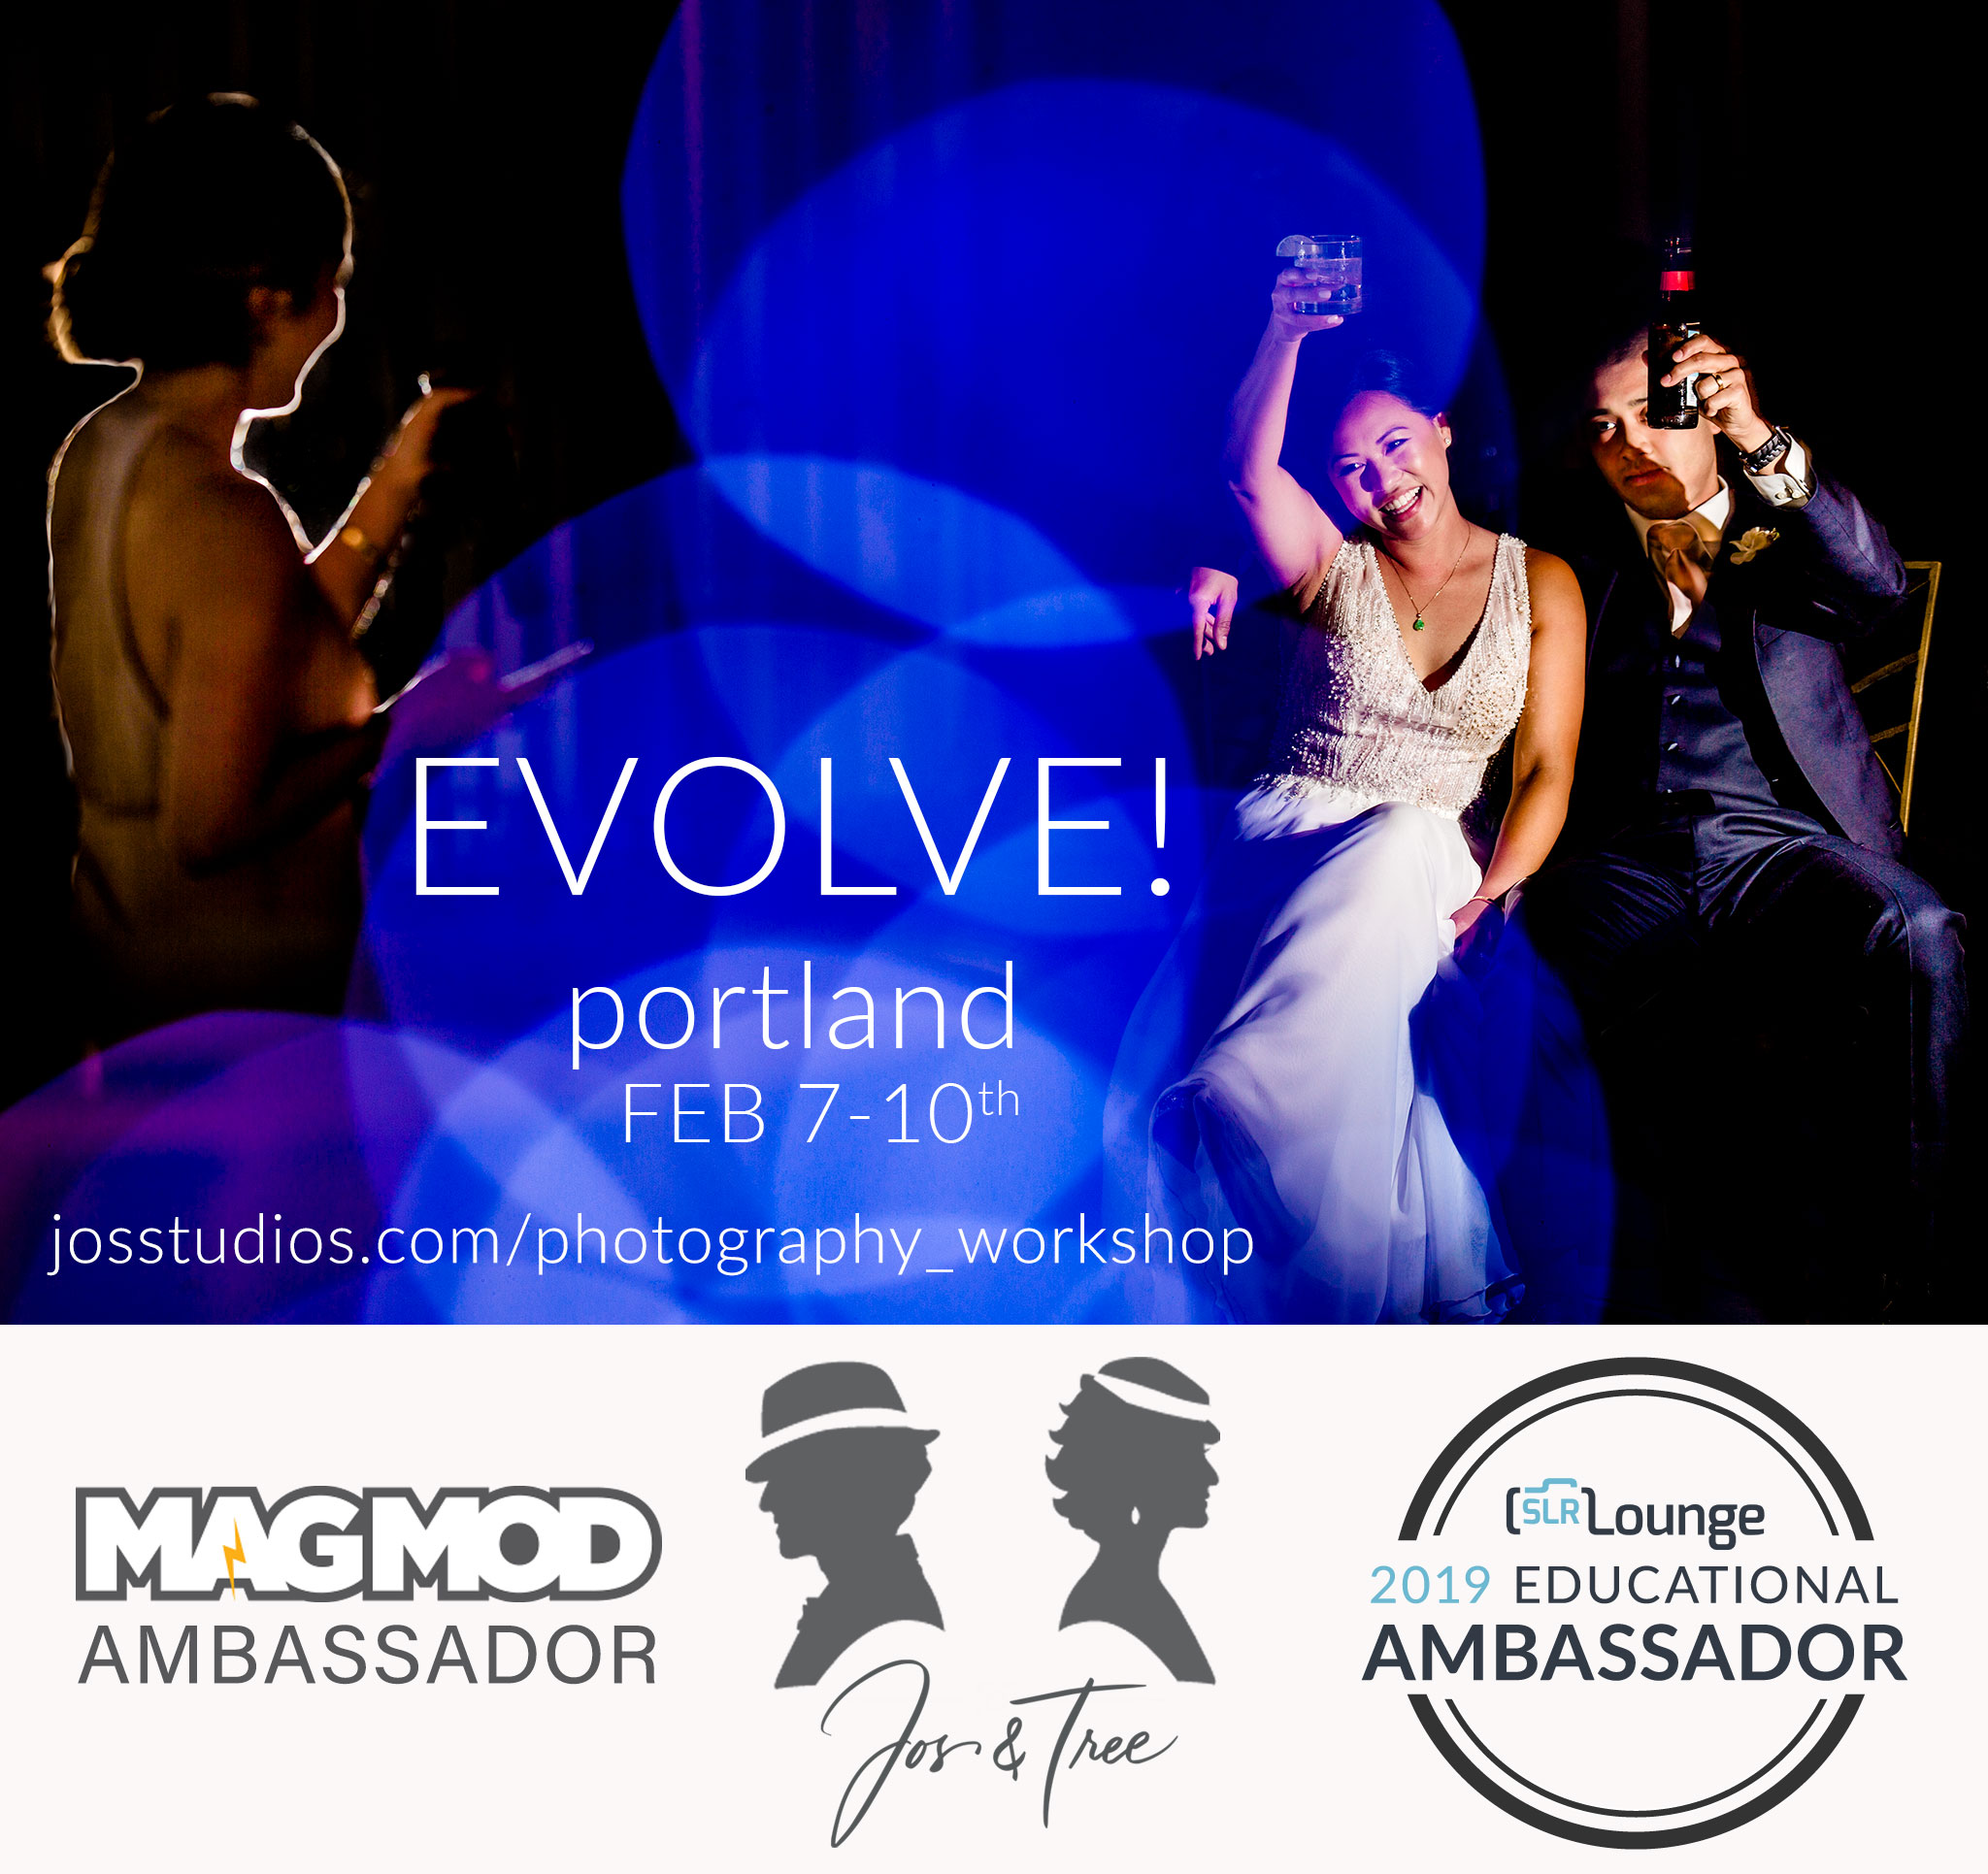 Evolve Photography Workshop for Wedding Photographers in Portland Oregon with Jos and Tree